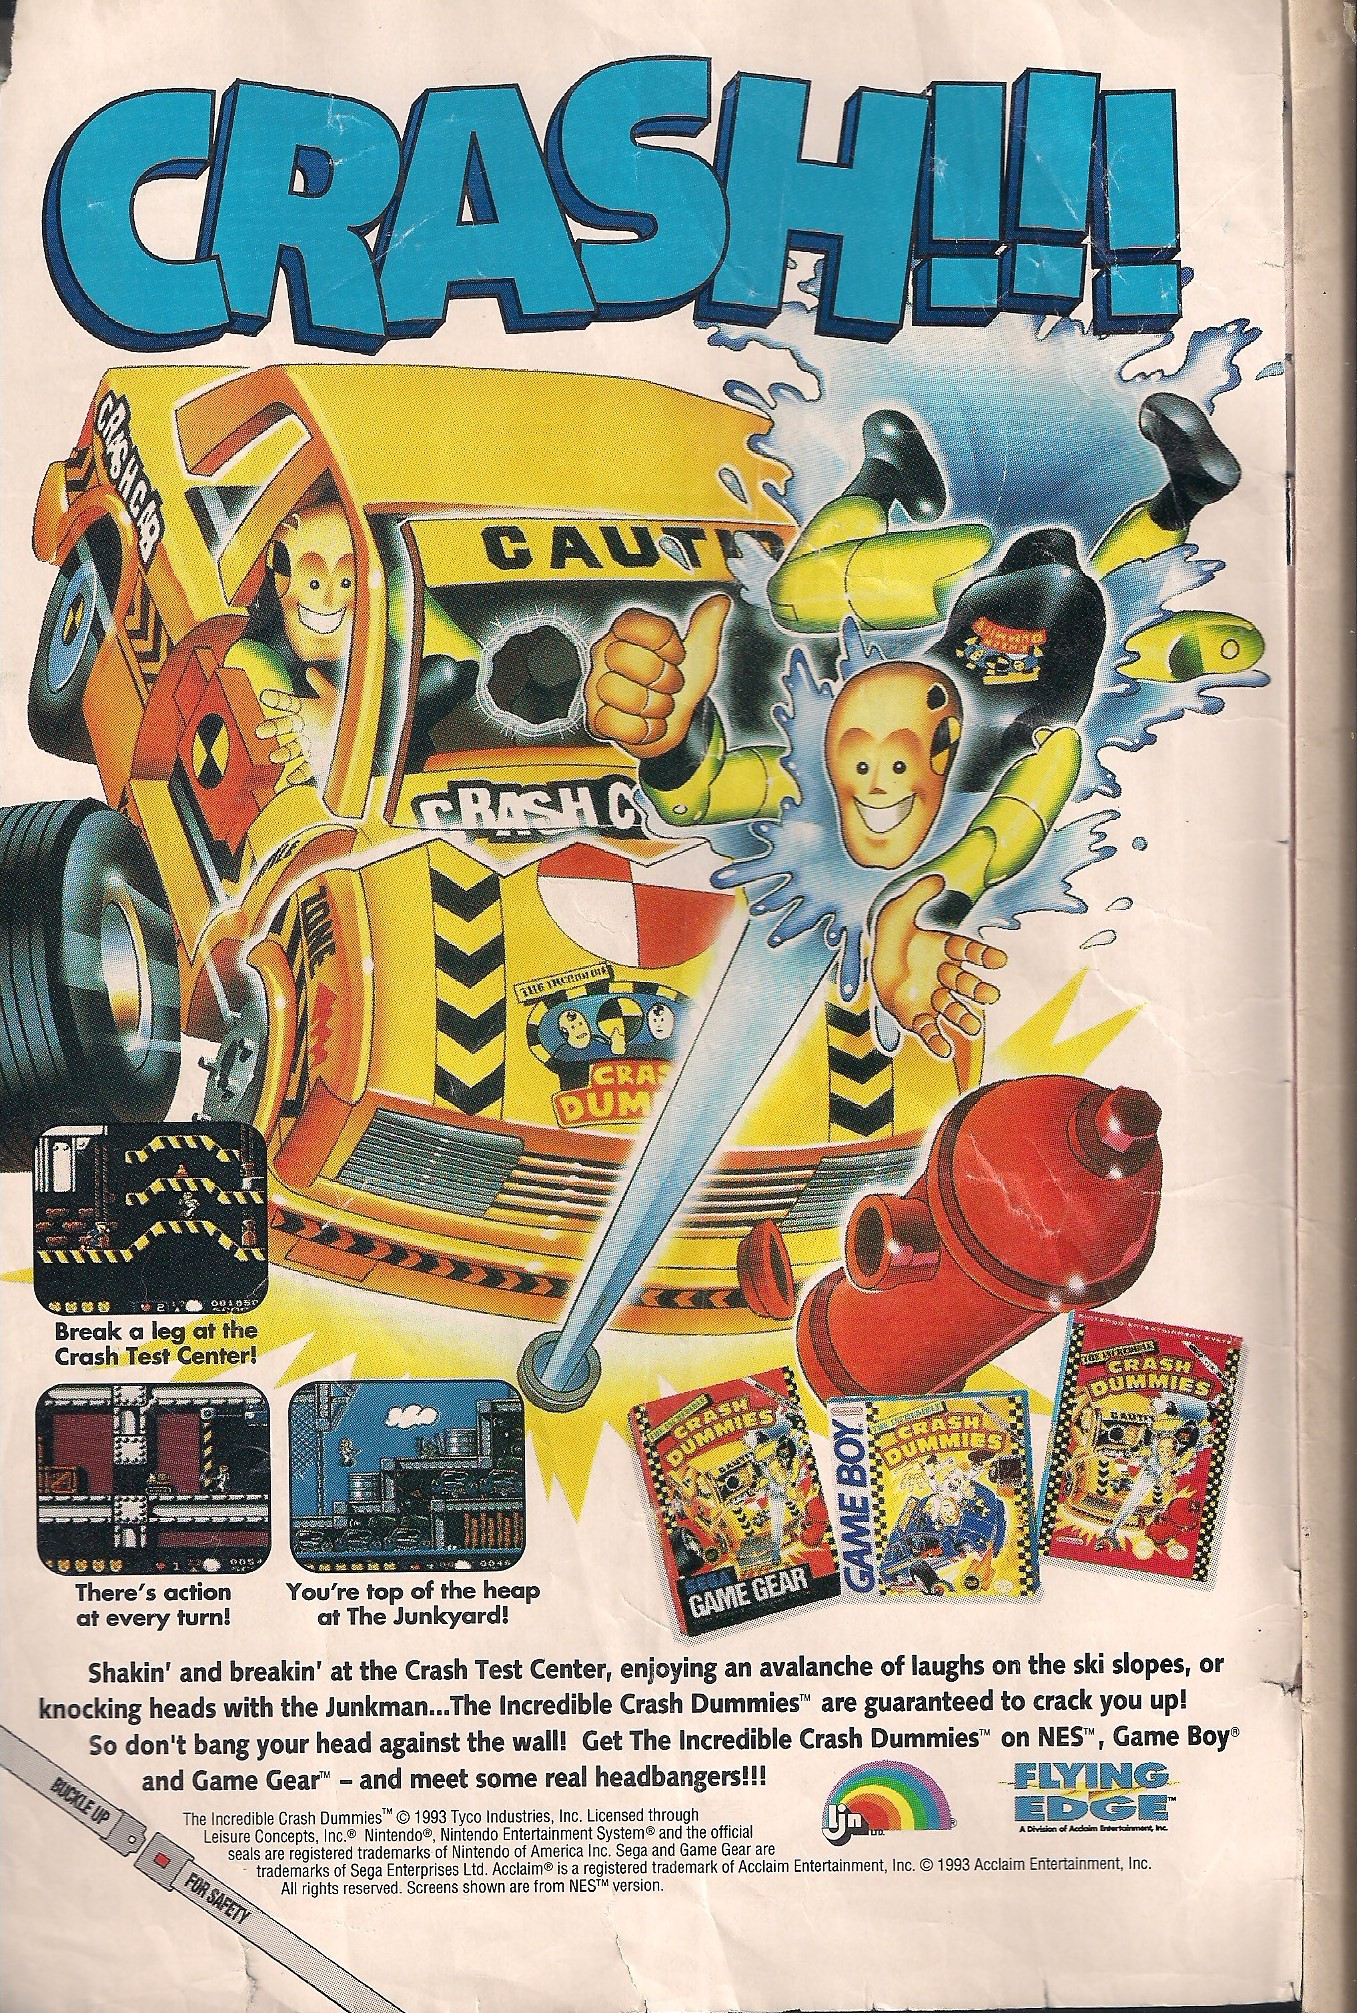 Bet you forgot that the Crash Test Dummies had a video game